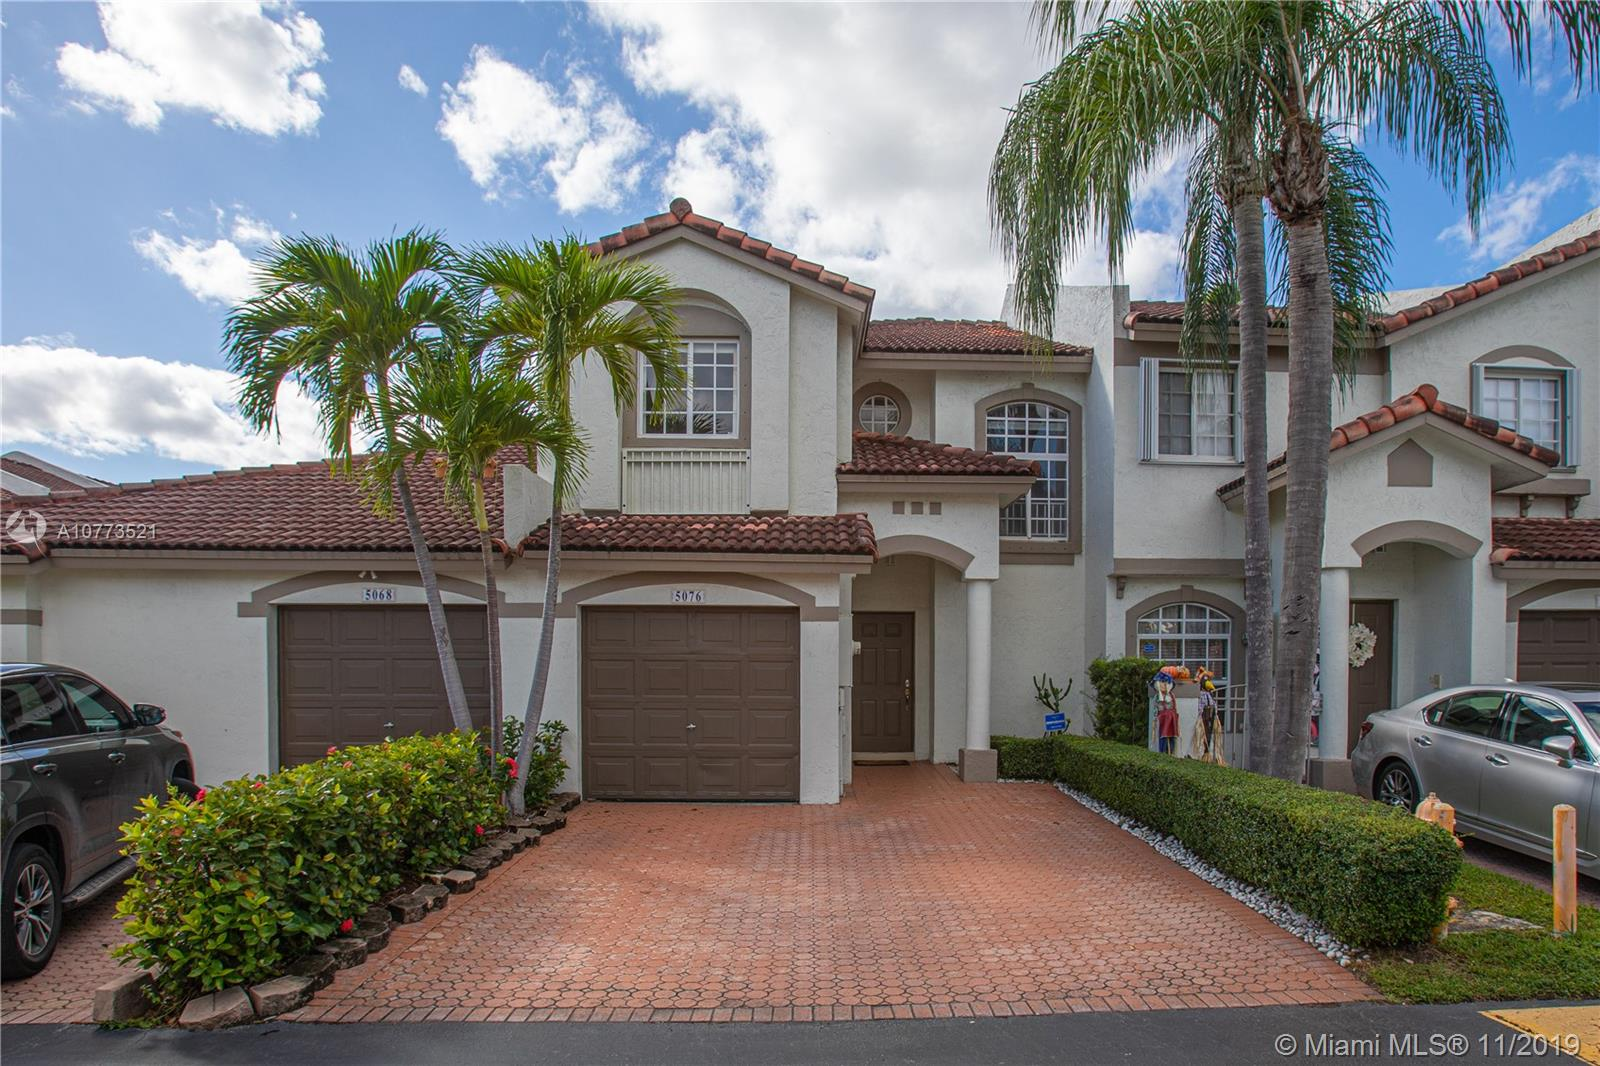 5076 NW 114th Pl, Doral, Florida